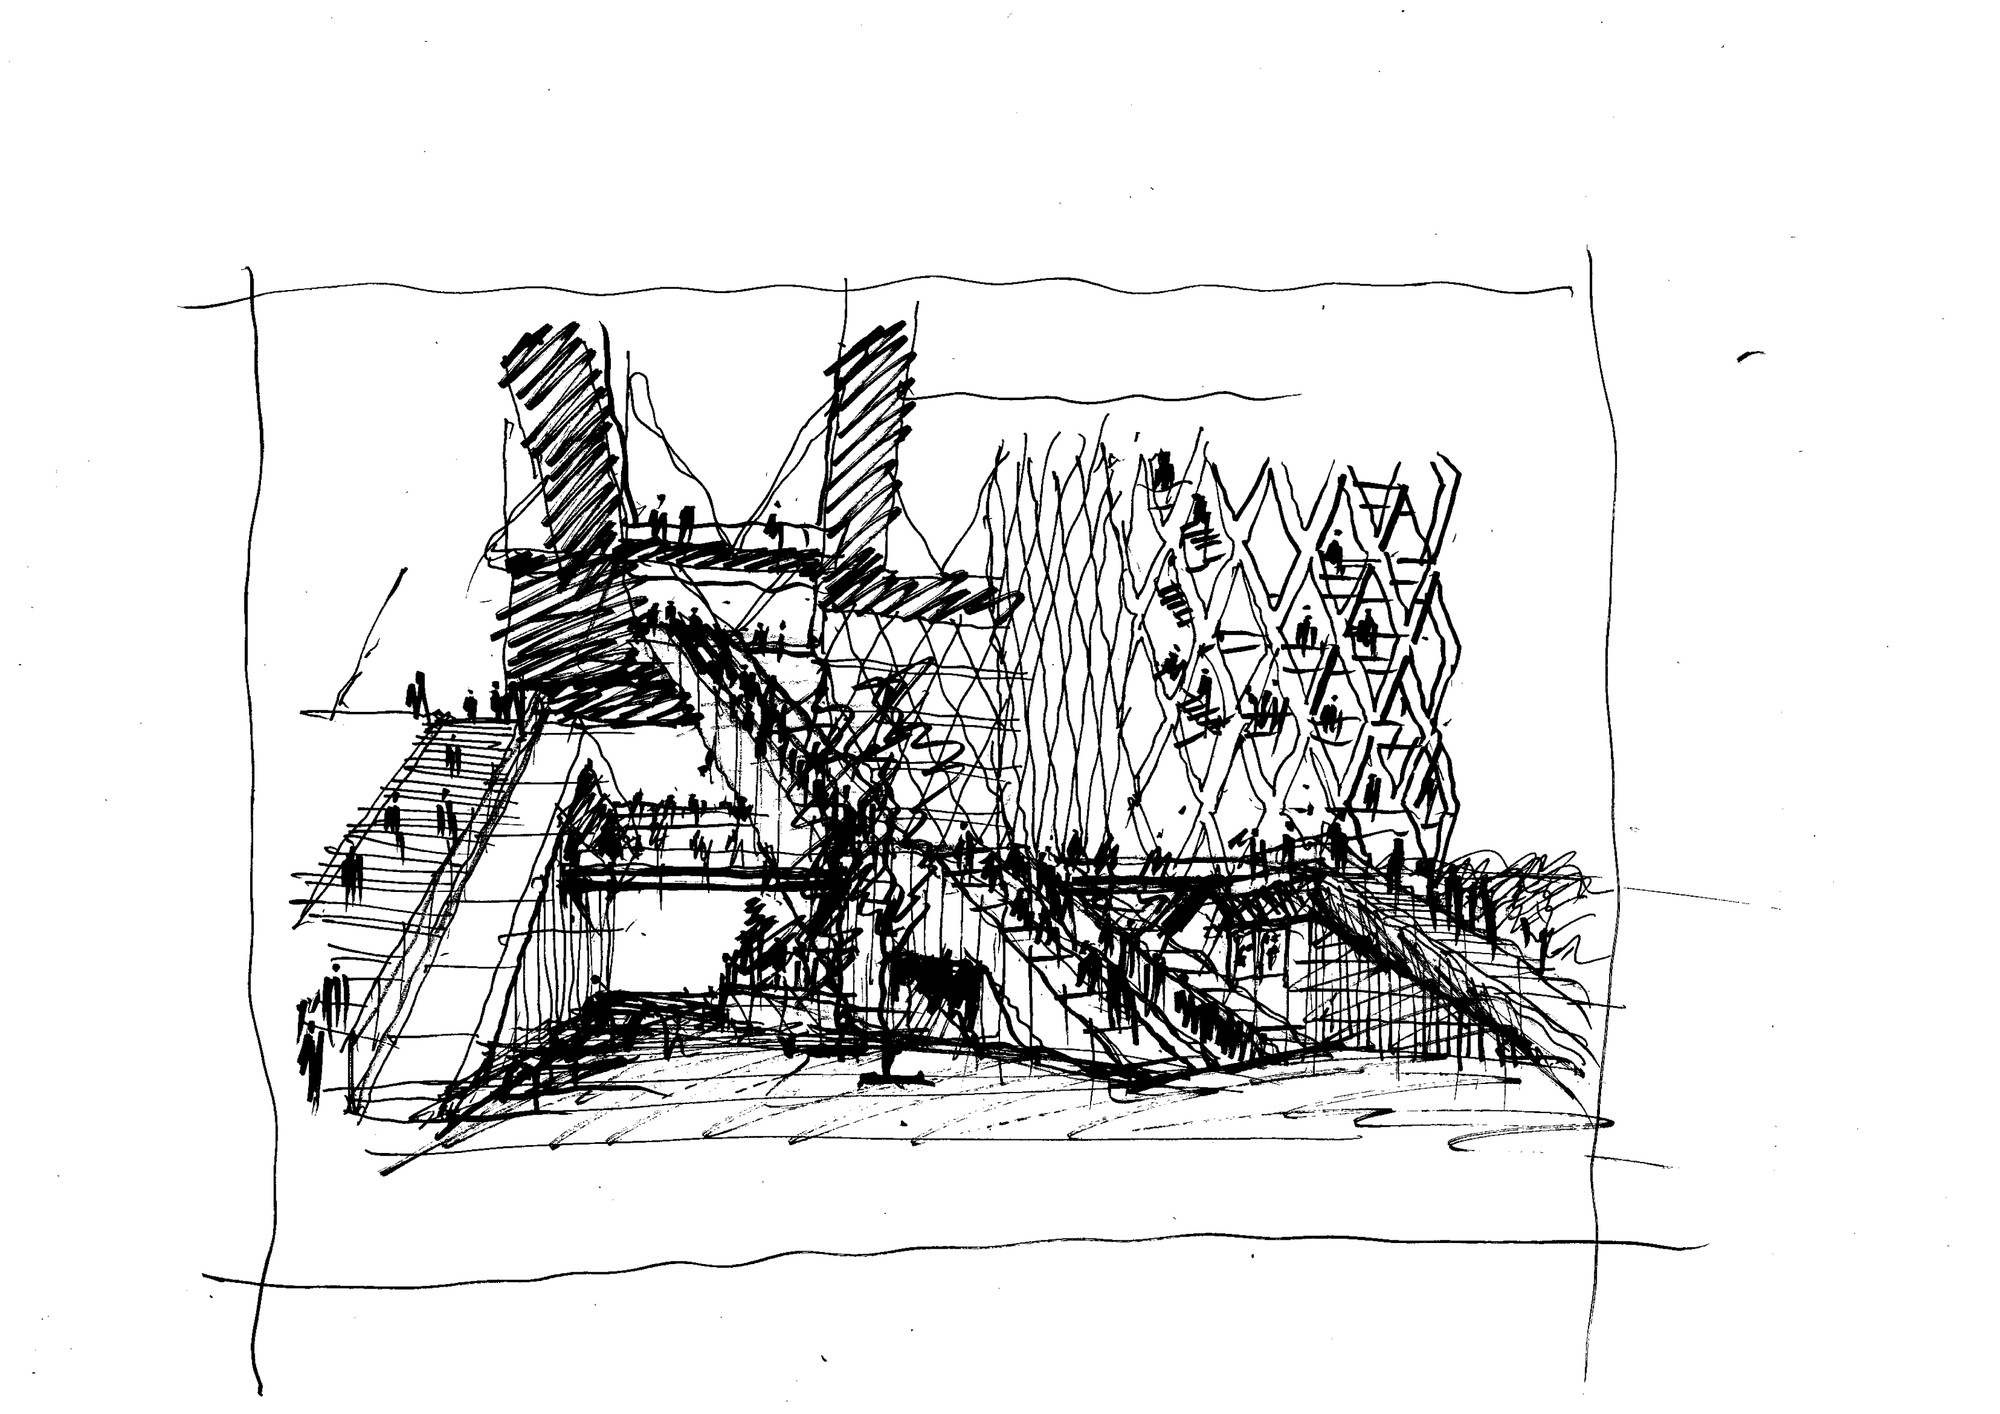 medium resolution of hong kong institute of design sketch